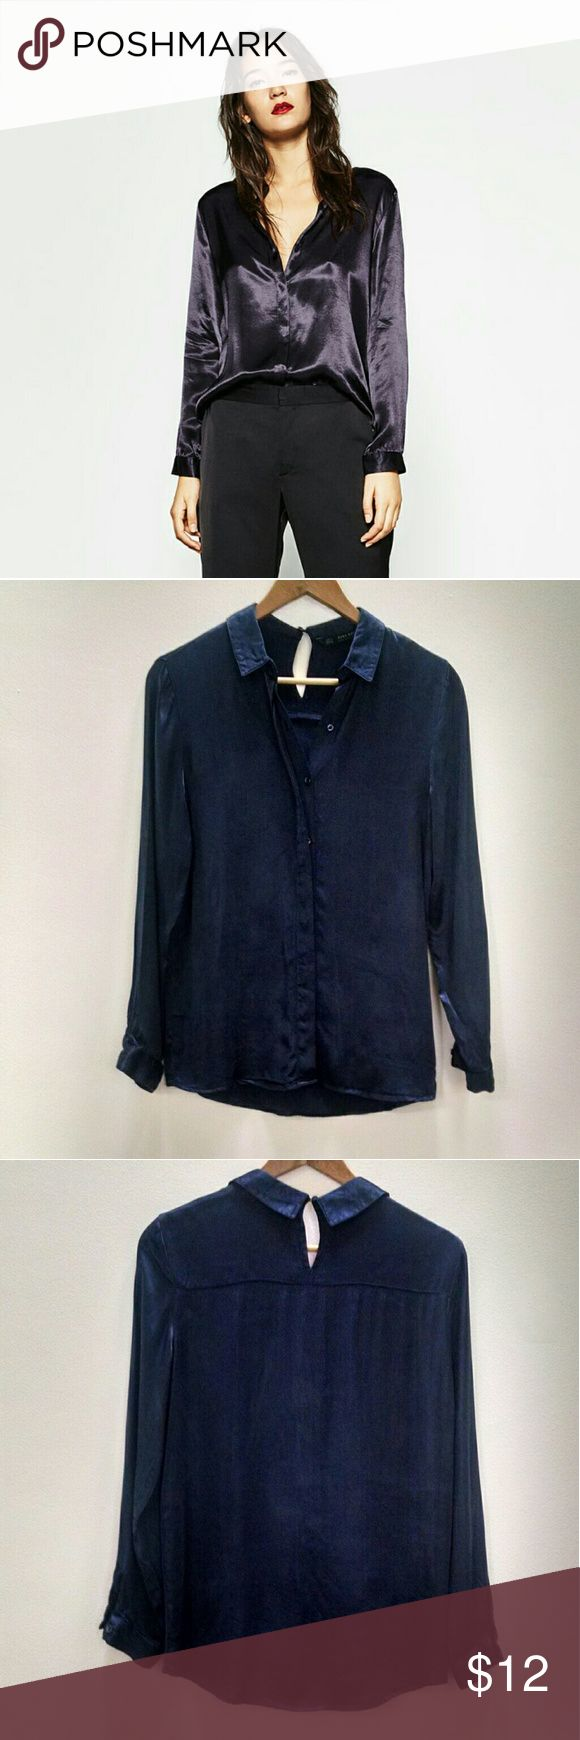 Chambray, Chemise Casual Homme, Bleu (Blue), SmallEsprit